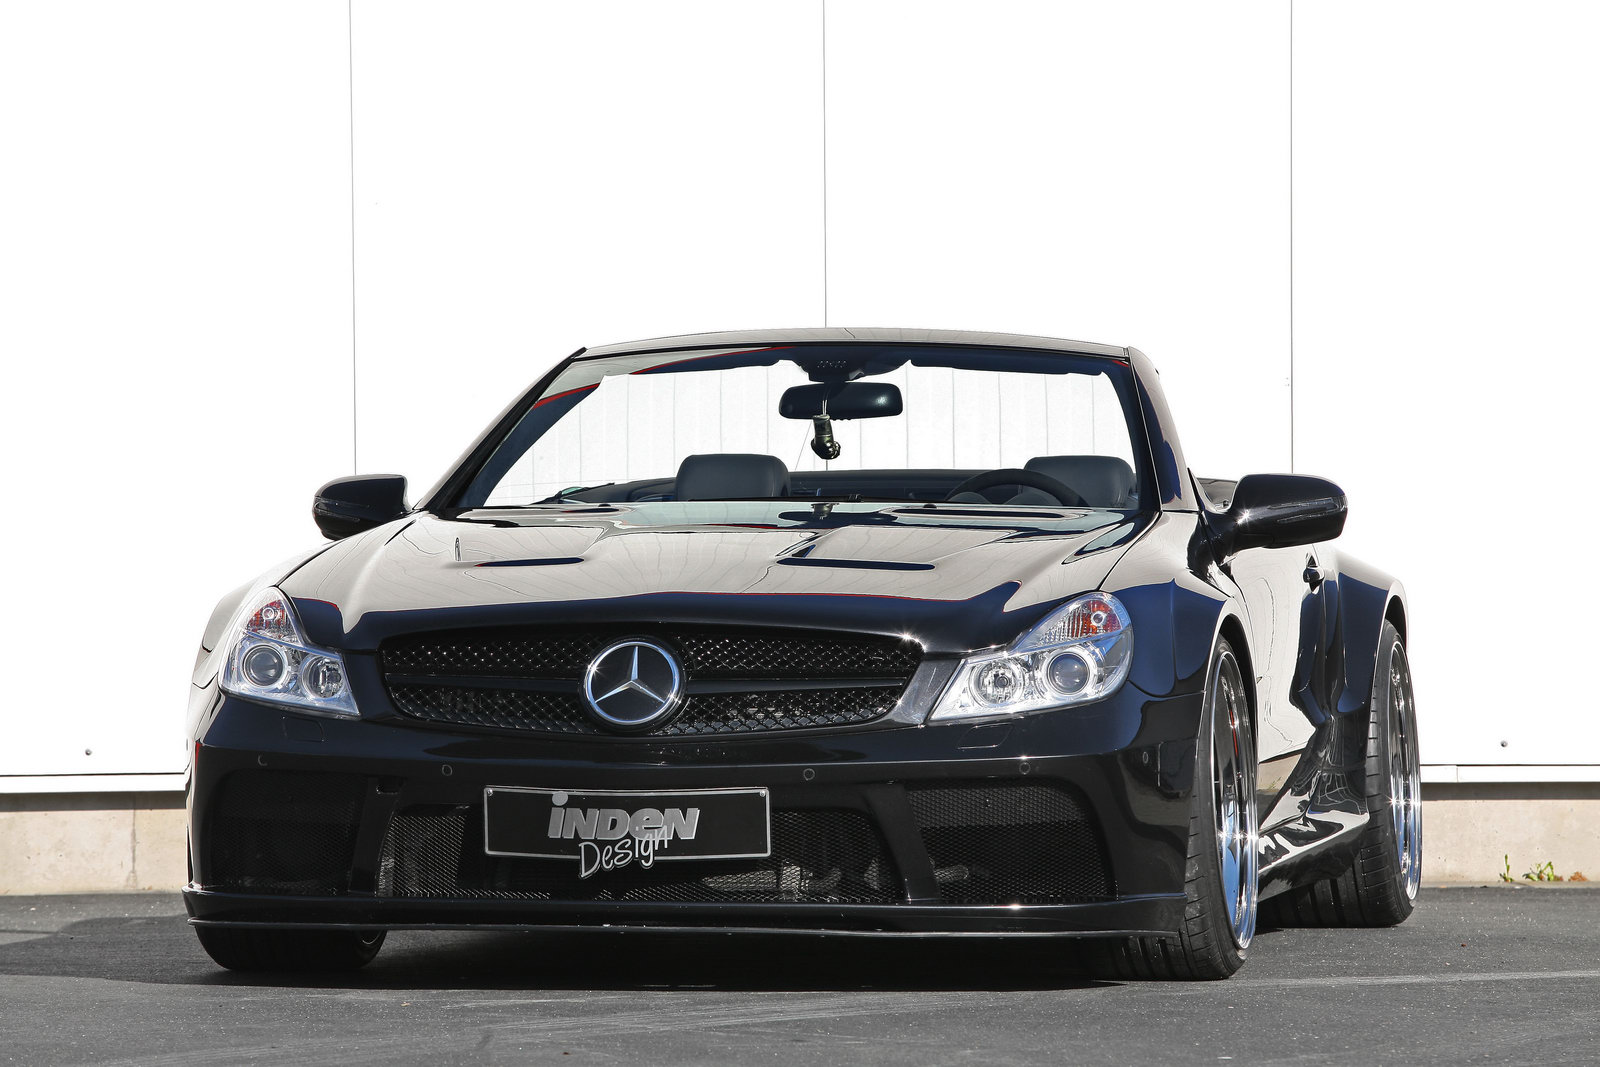 Inden design mercedes benz sl65 amg black series for Mercedes benz sl65 amg black series for sale